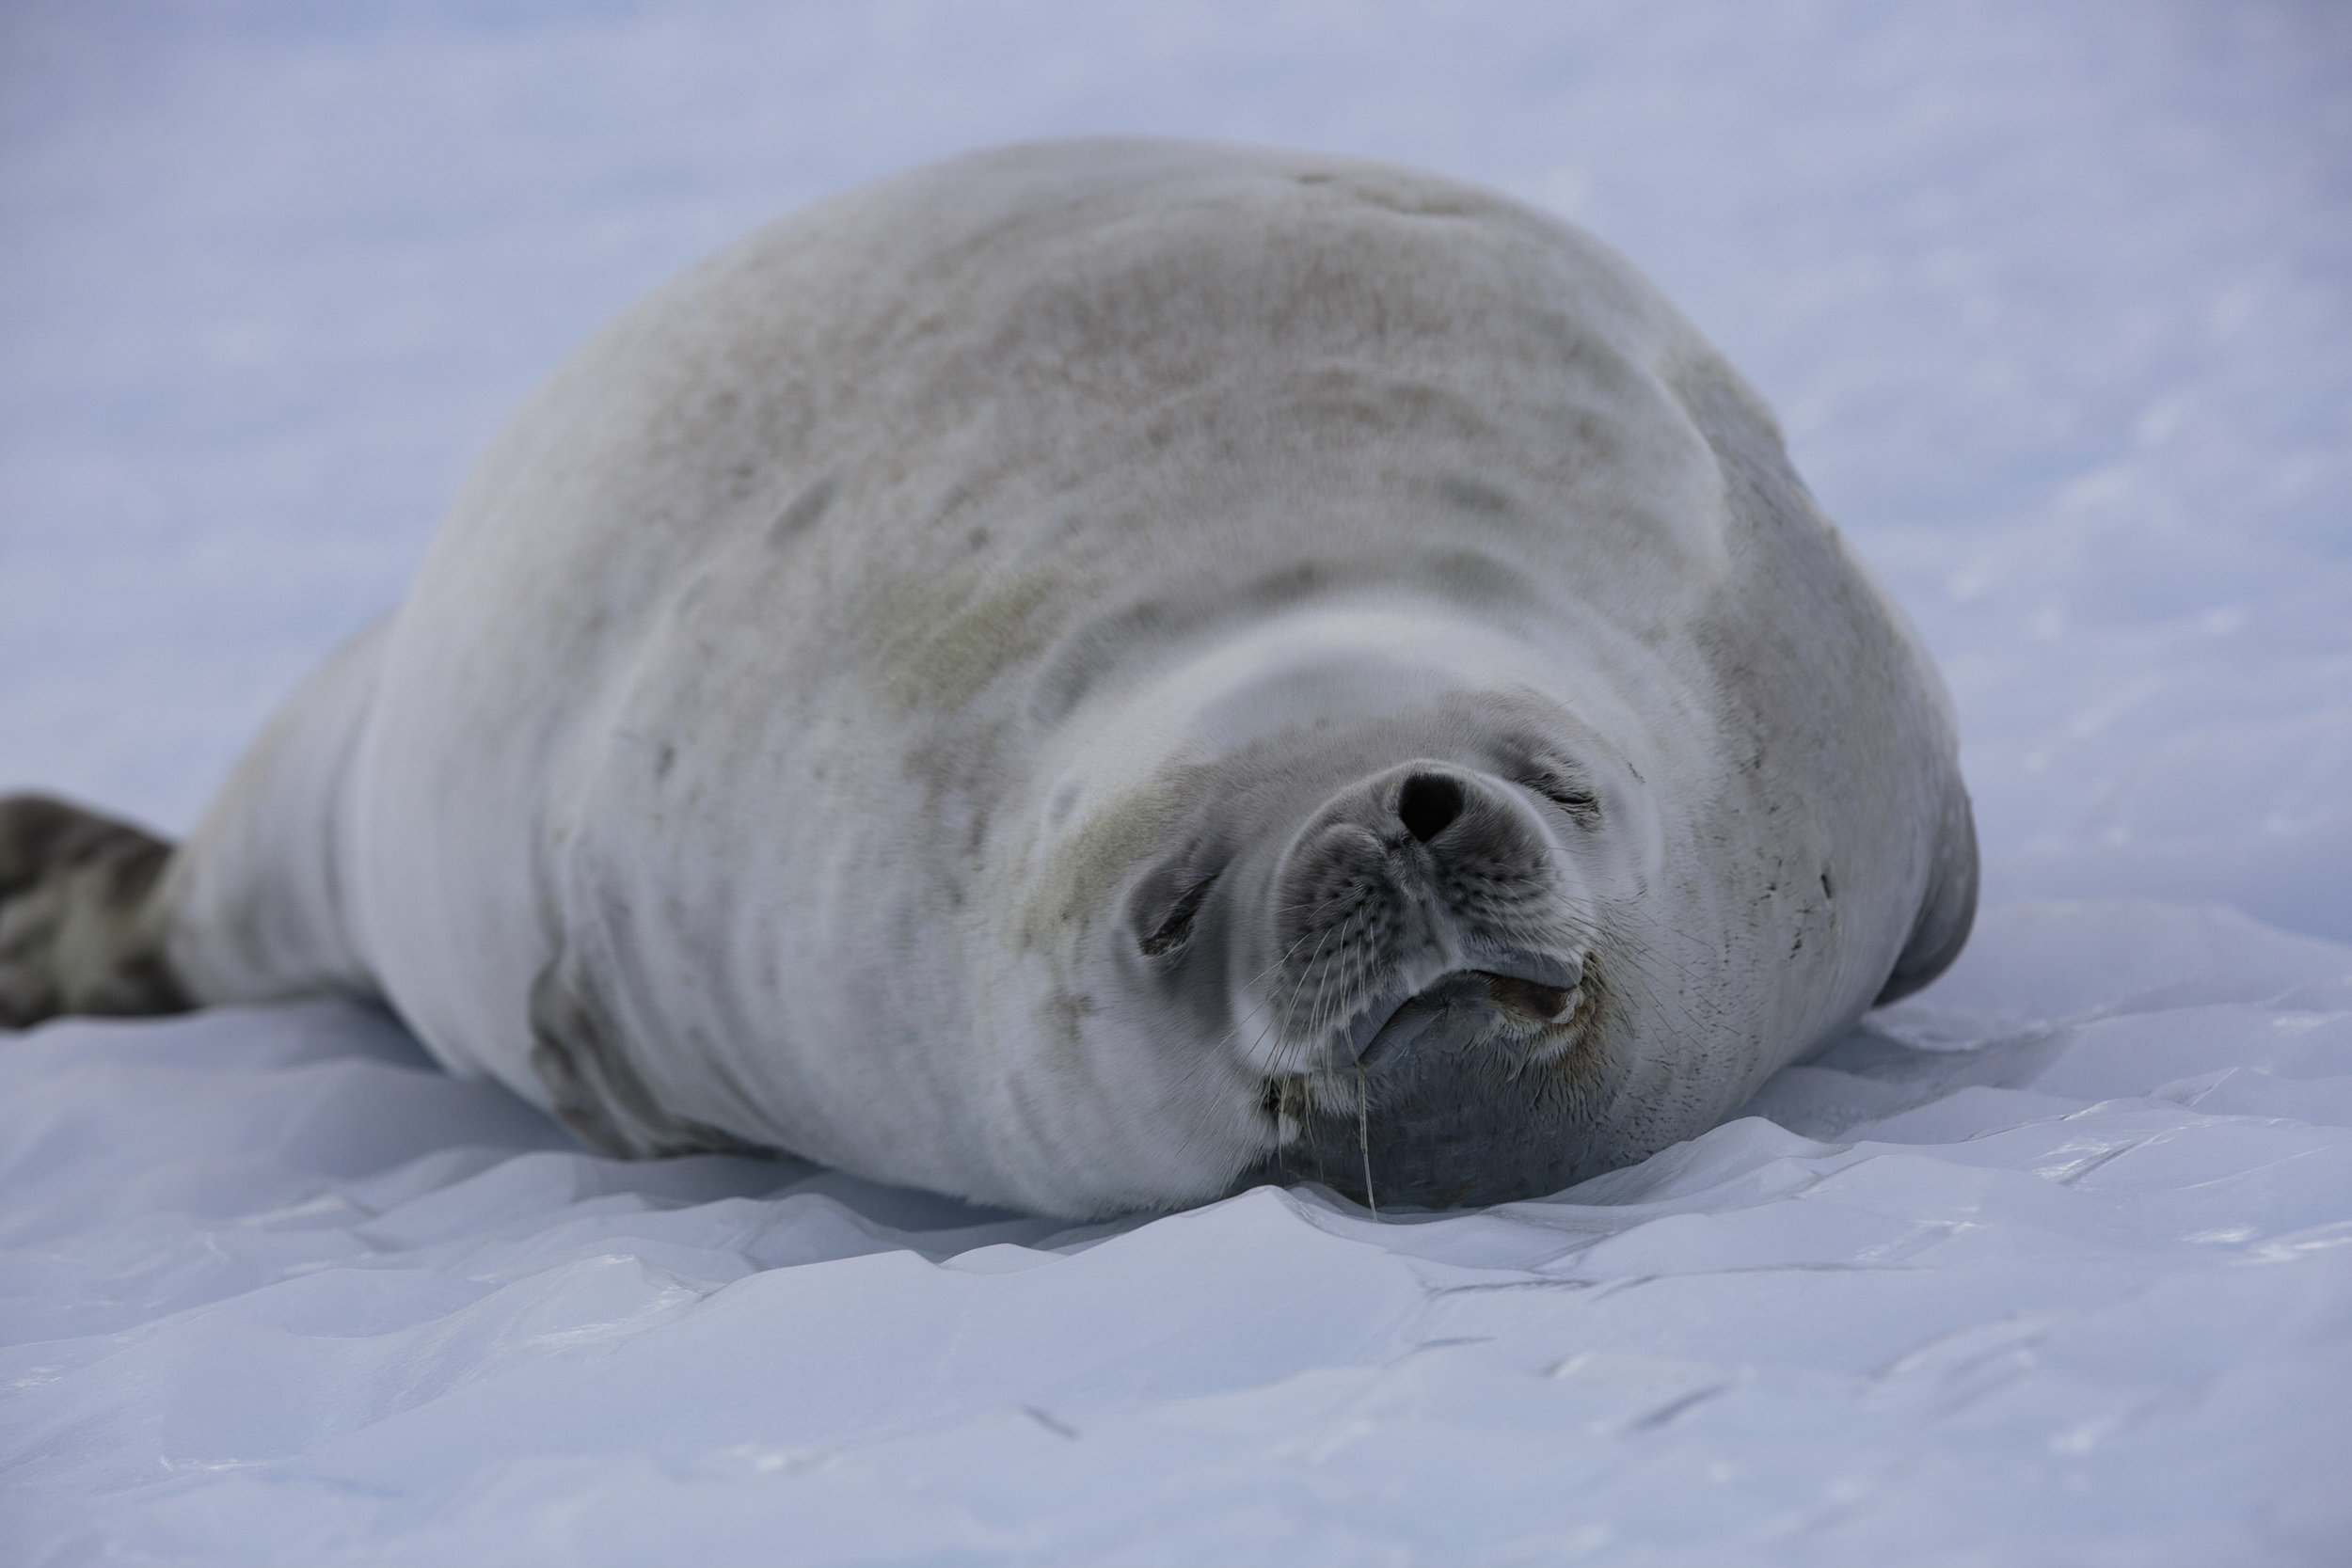 Did you know that a seals resting position is to have its nostrils closed? It makes sense as it lives under water most of its life, only needing to open a nostril when it needs to breathe. This crabeater seal takes a nap.